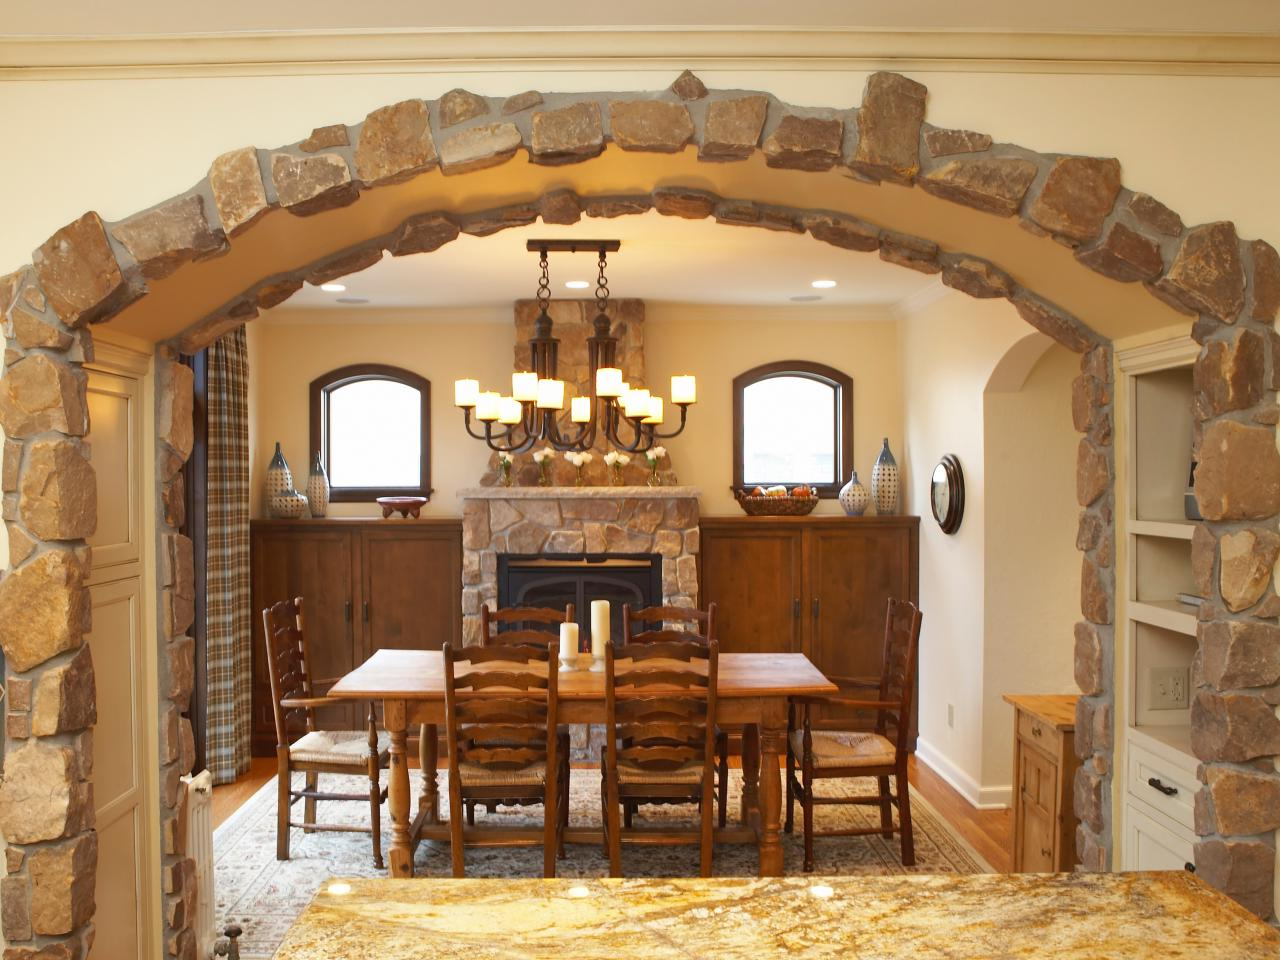 Stone Arch In Kitchen Indoor Stone Arch ... Part 57